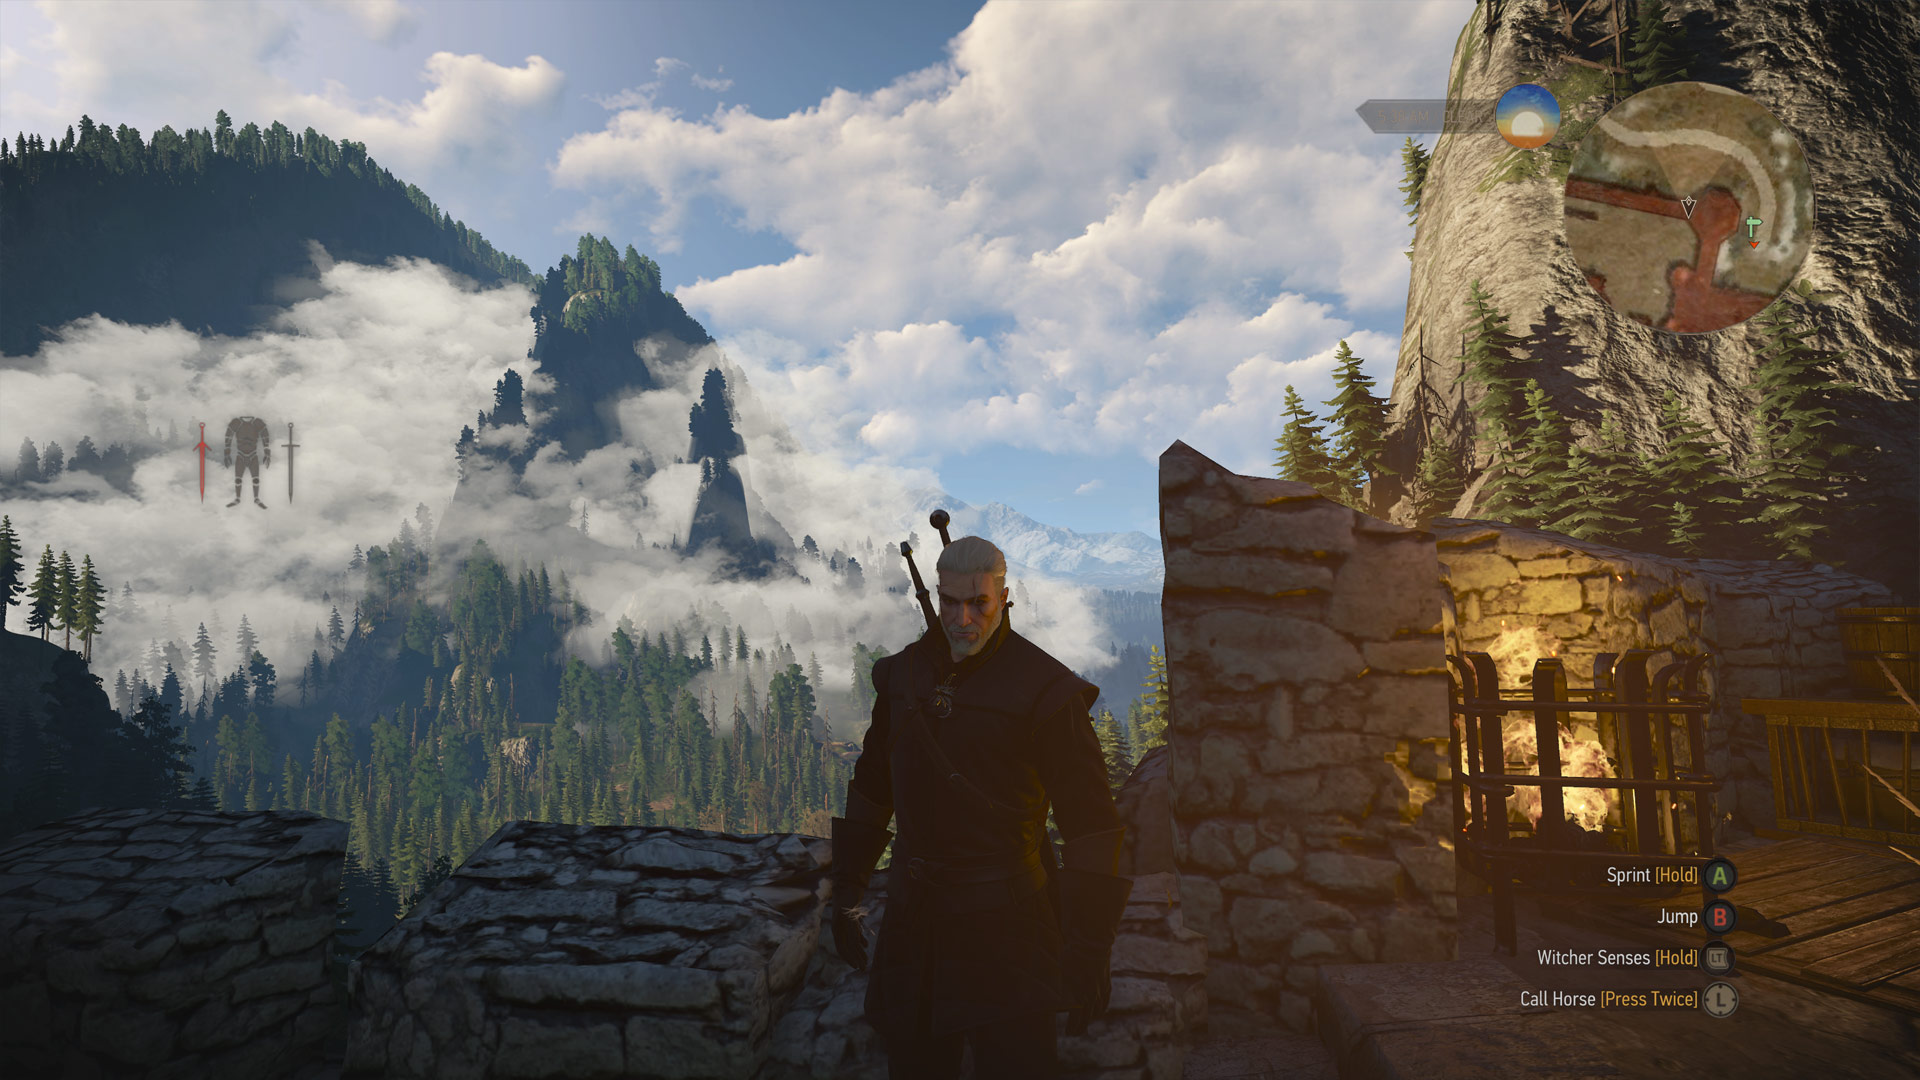 The Witcher 3: Wild Hunt supersampled